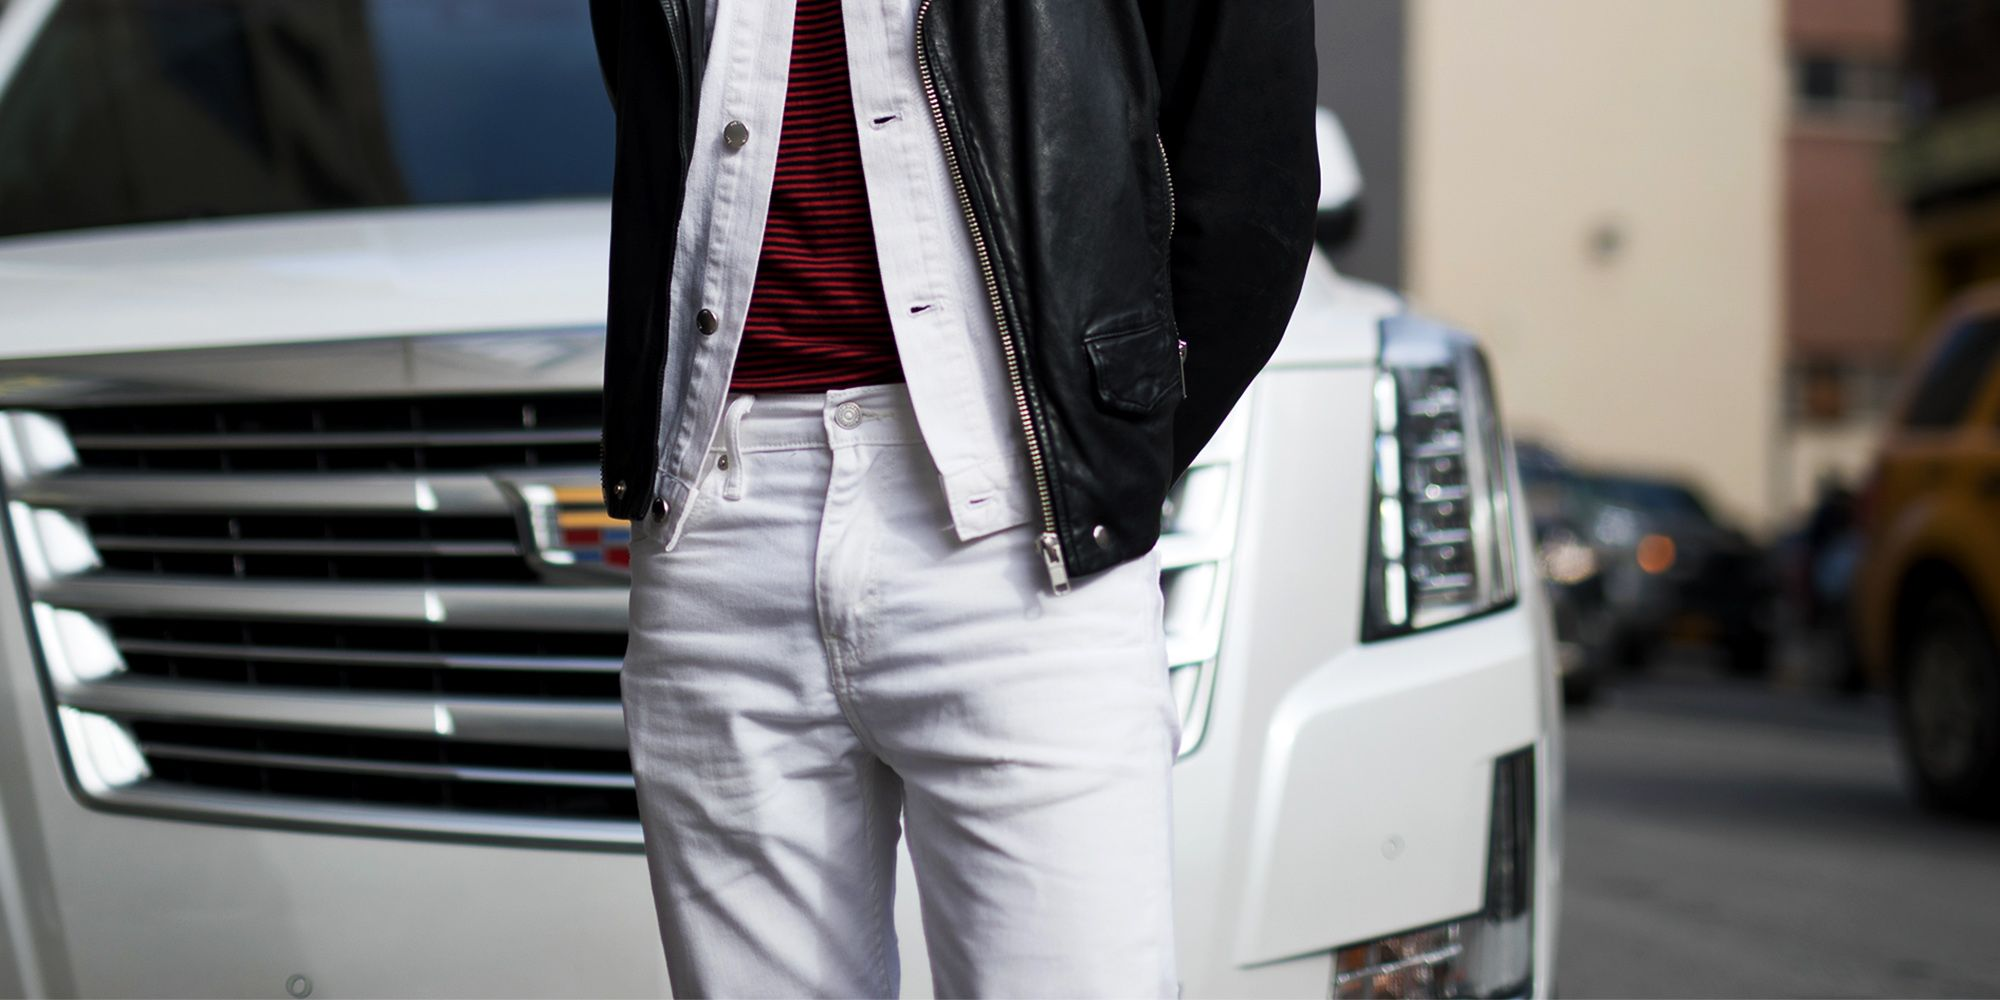 0ae6c96015c 10 Best White Jeans to Wear for Summer 2018 - How to Wear White ...